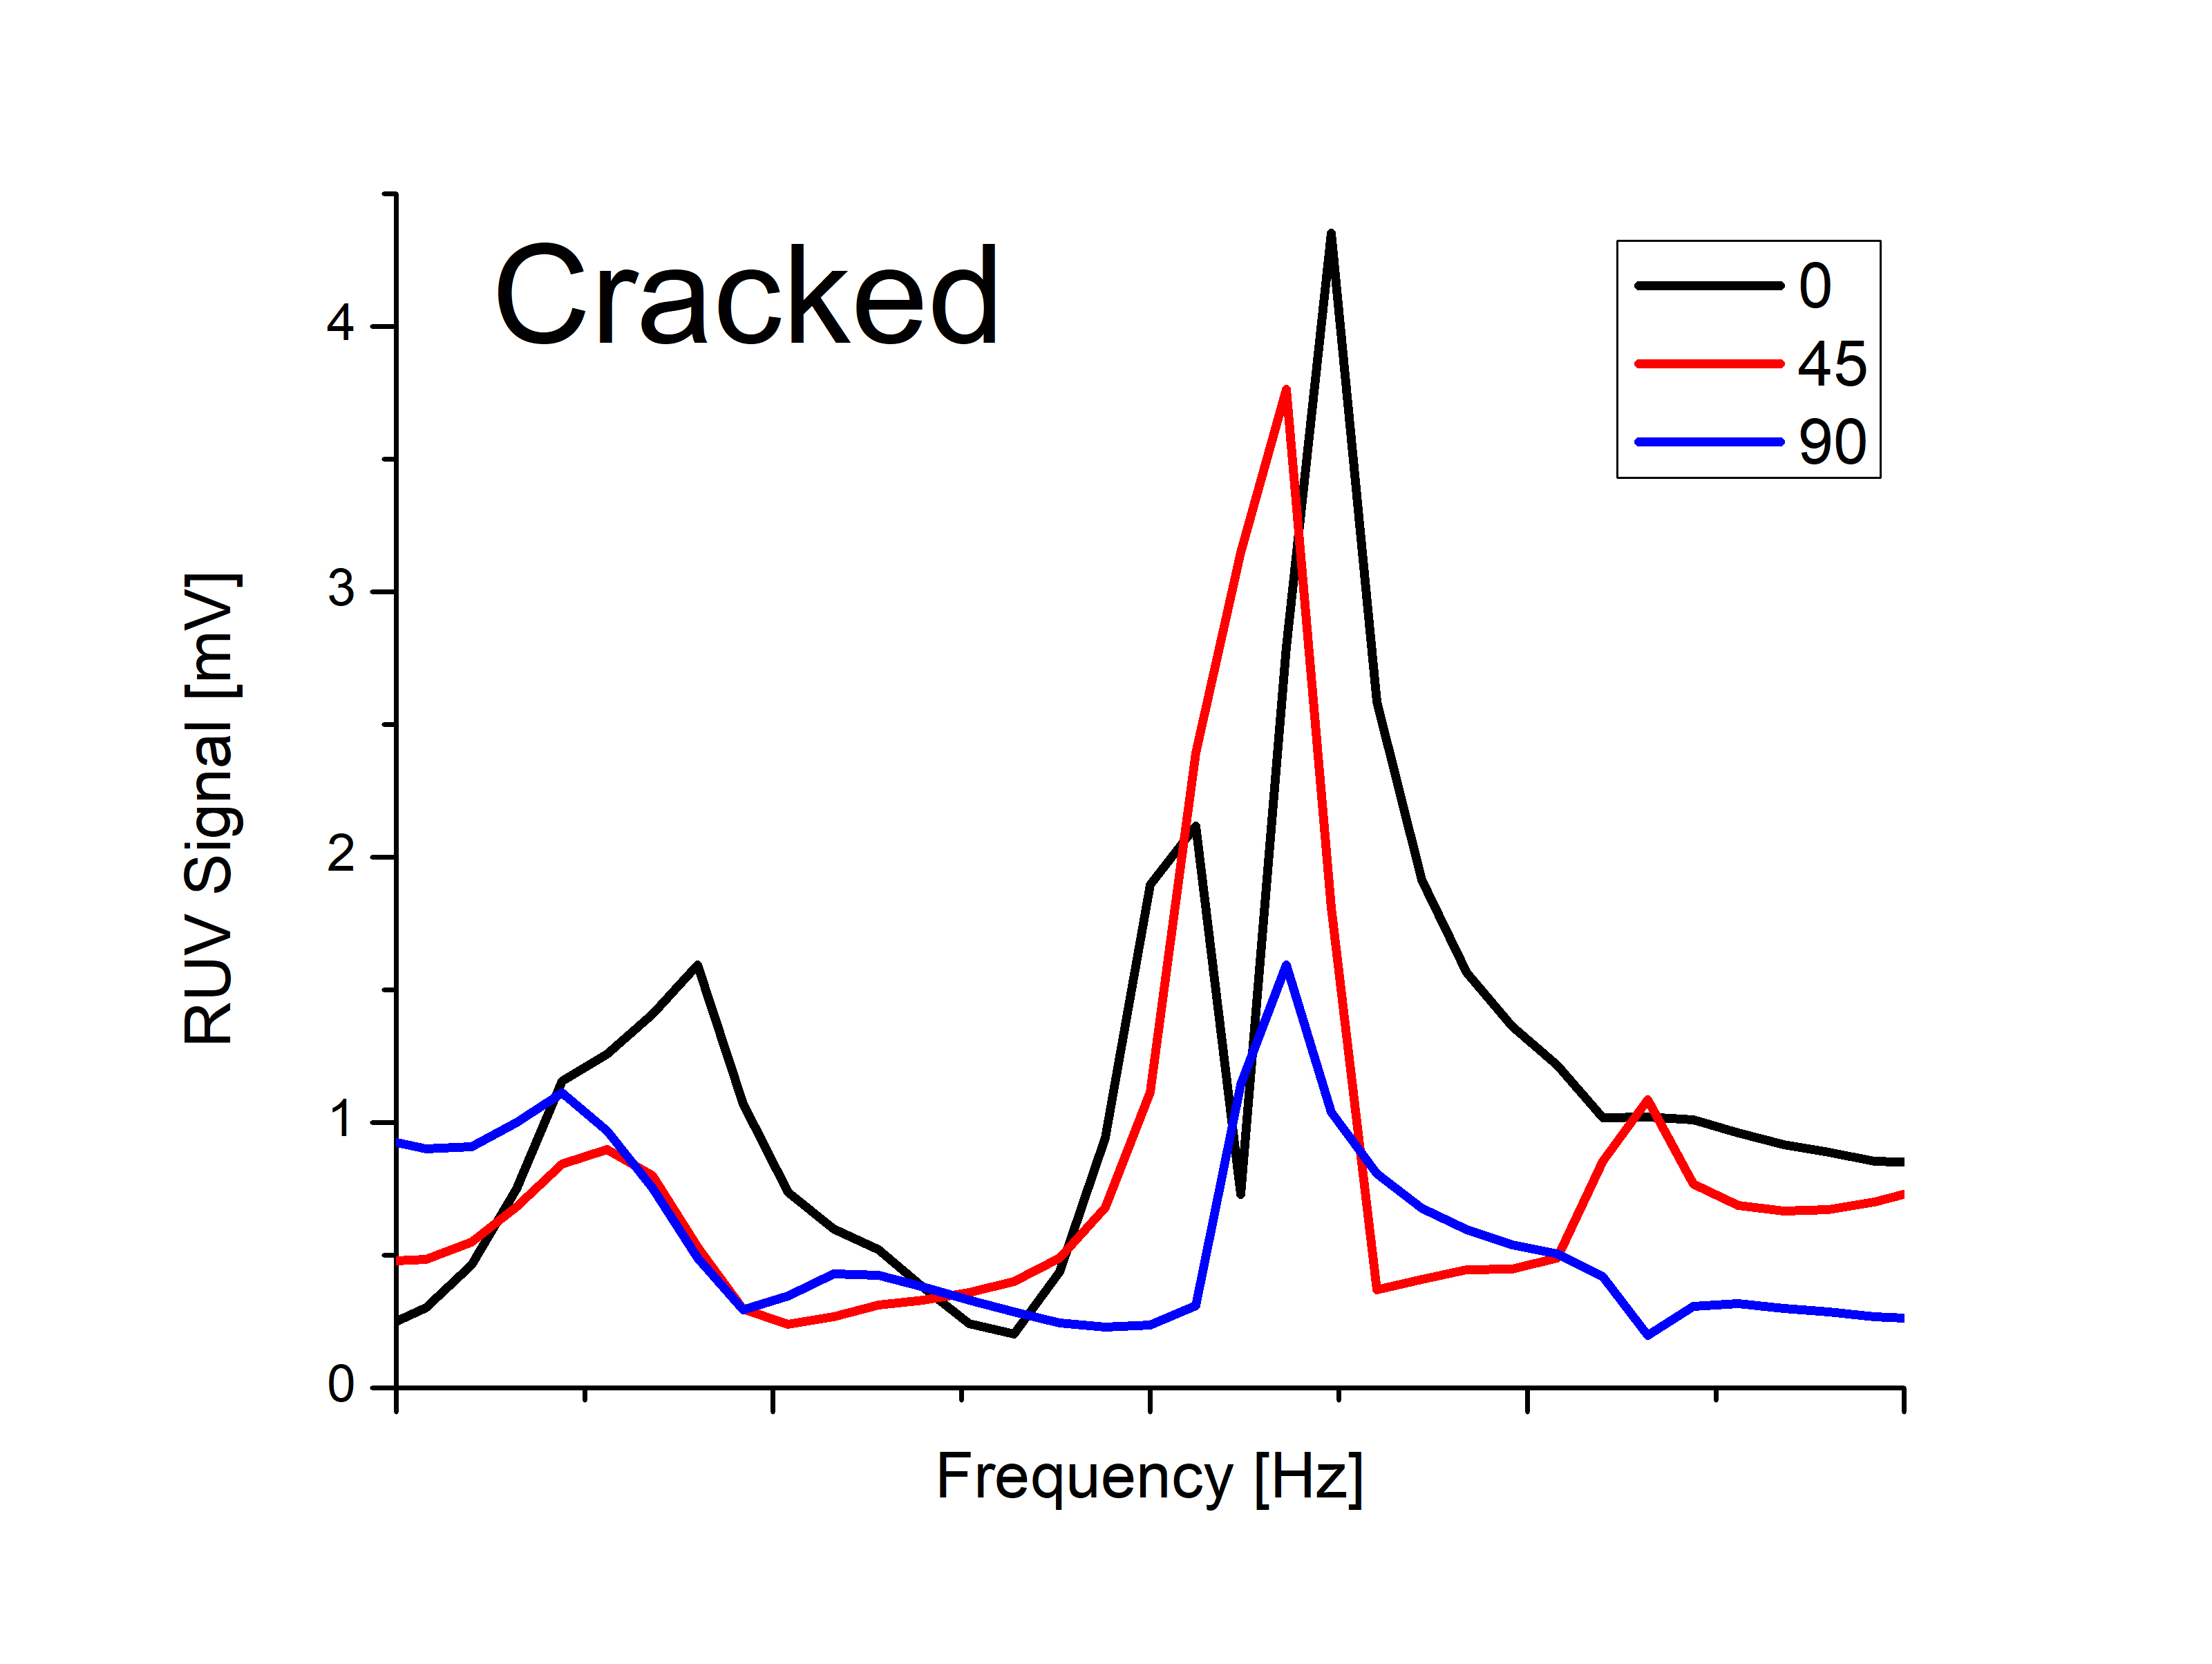 Figure 2: RUV signatures of cracked samples.